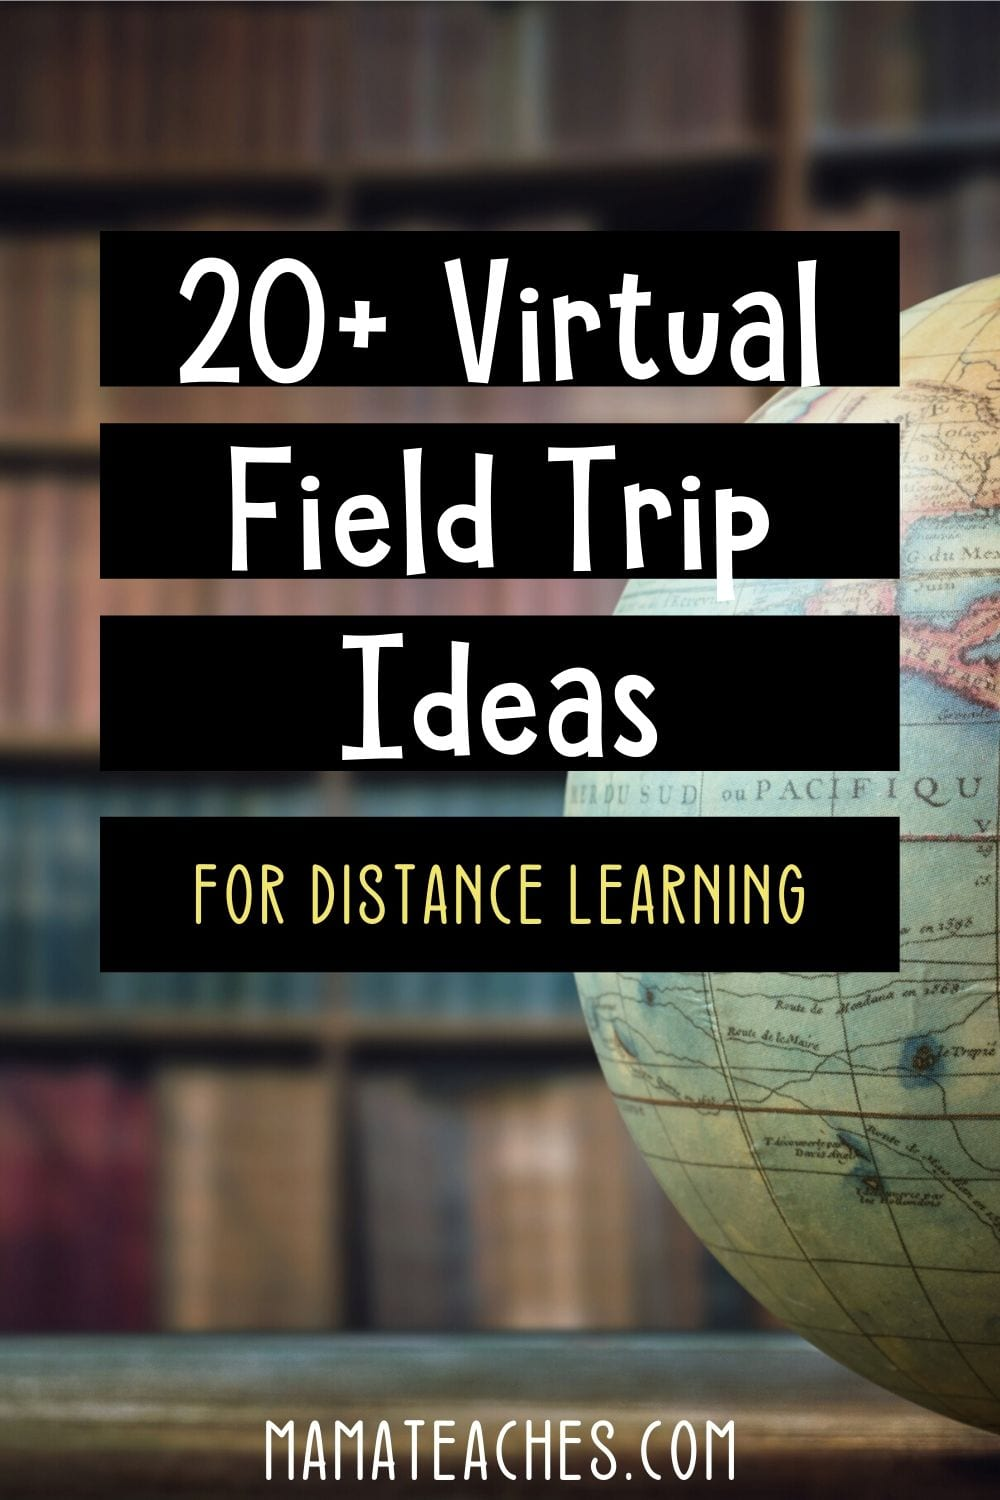 20+ Virtual Field Trip Ideas for Distance Learning - MamaTeaches